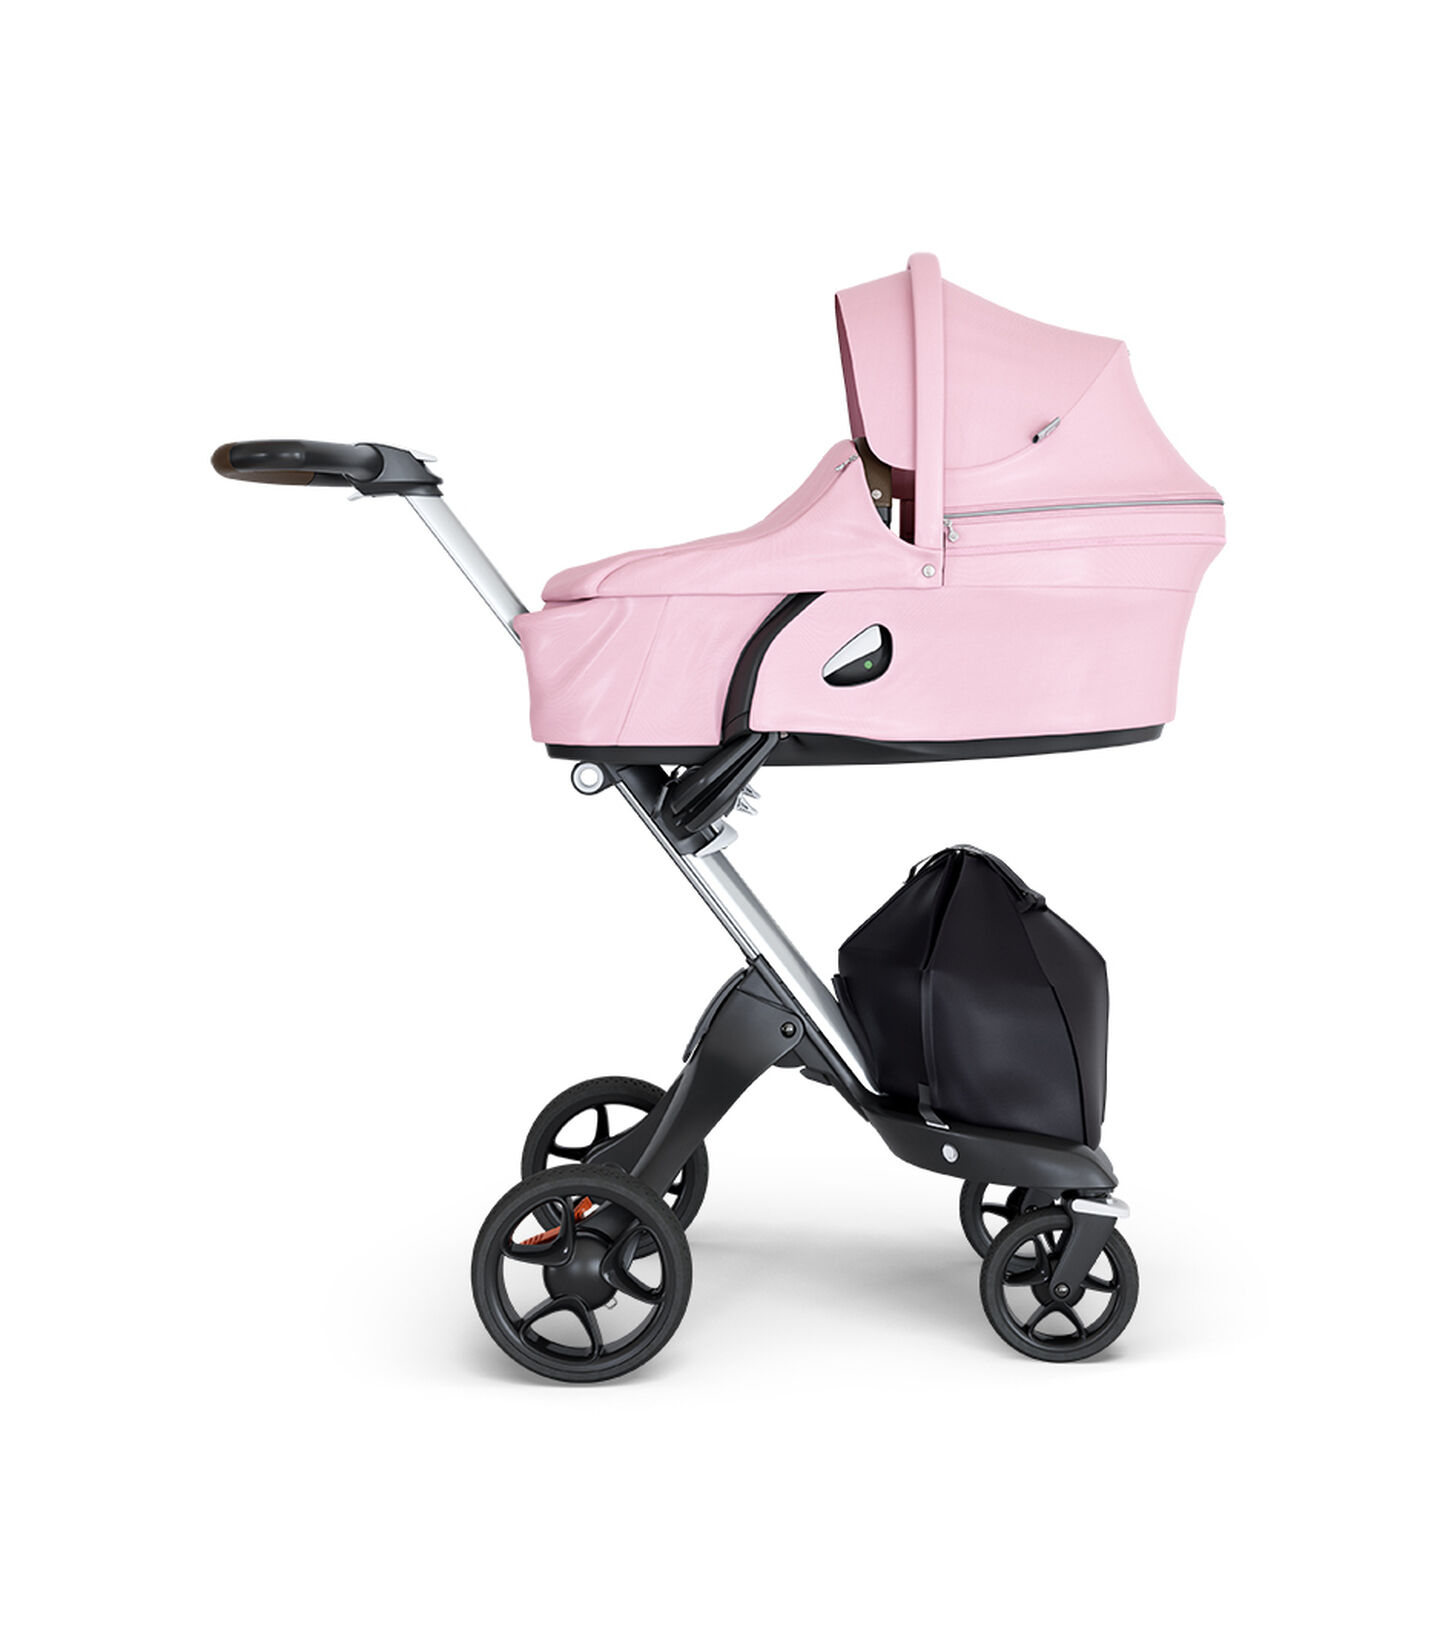 Stokke® Xplory® wtih Silver Chassis and Leatherette Brown handle. Stokke® Stroller Carry Cot Lotus Pink.